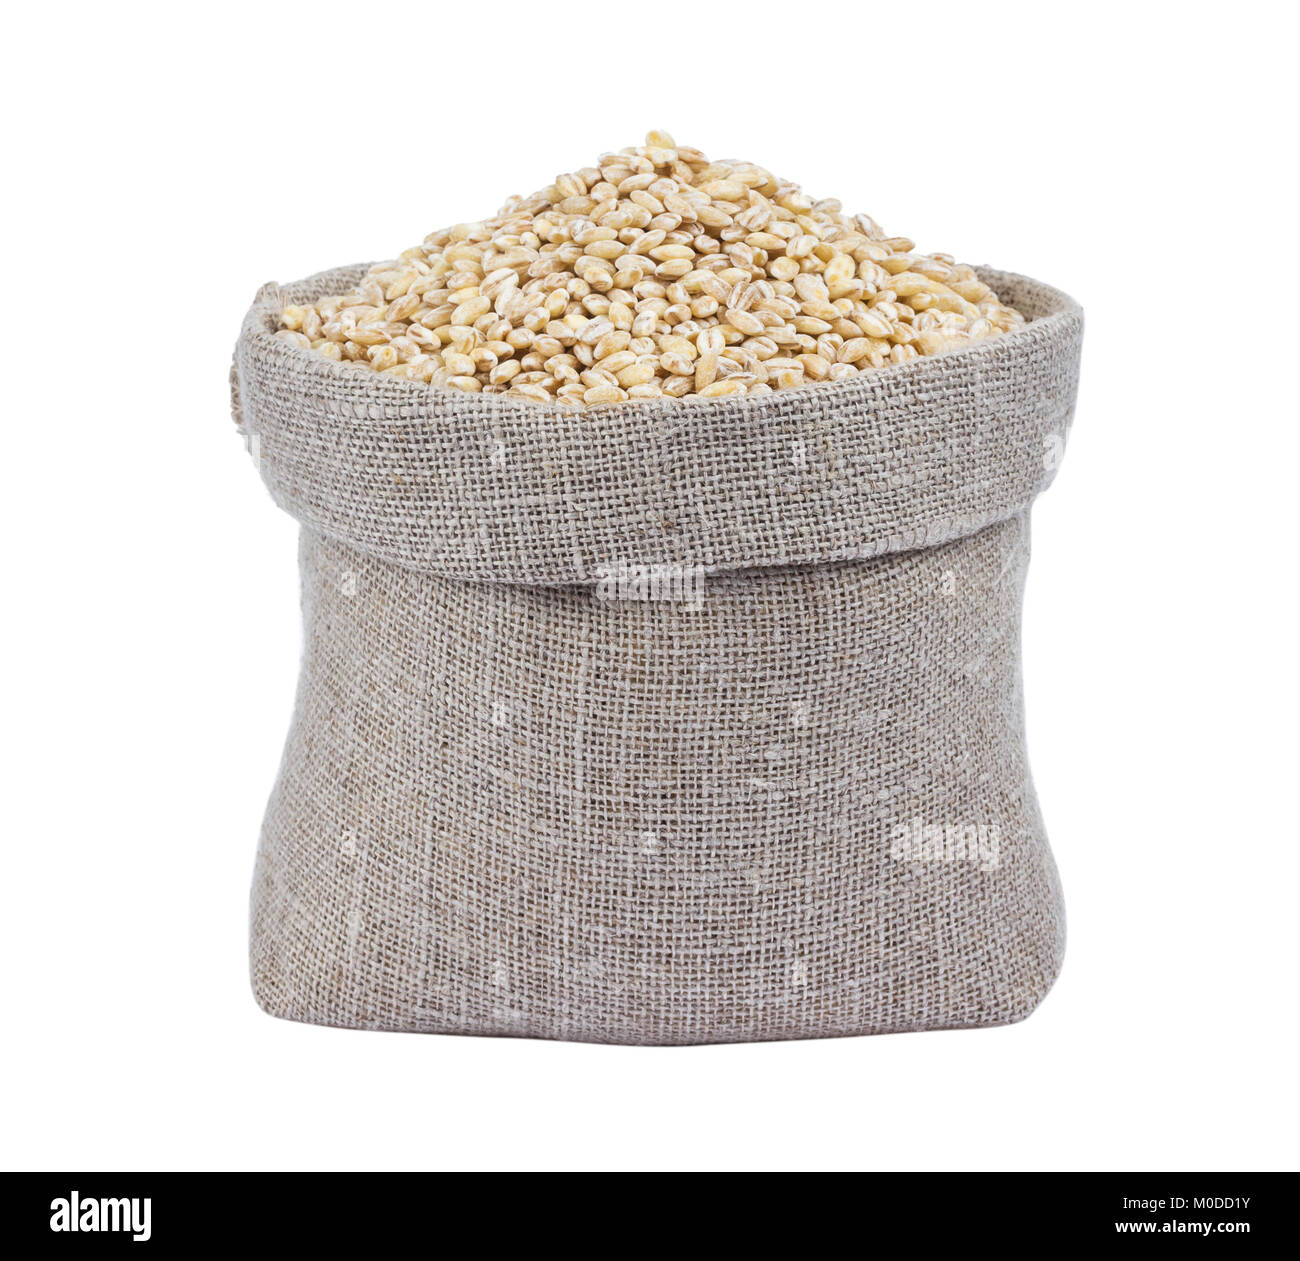 Pearl barley in bag isolated on white background - Stock Image